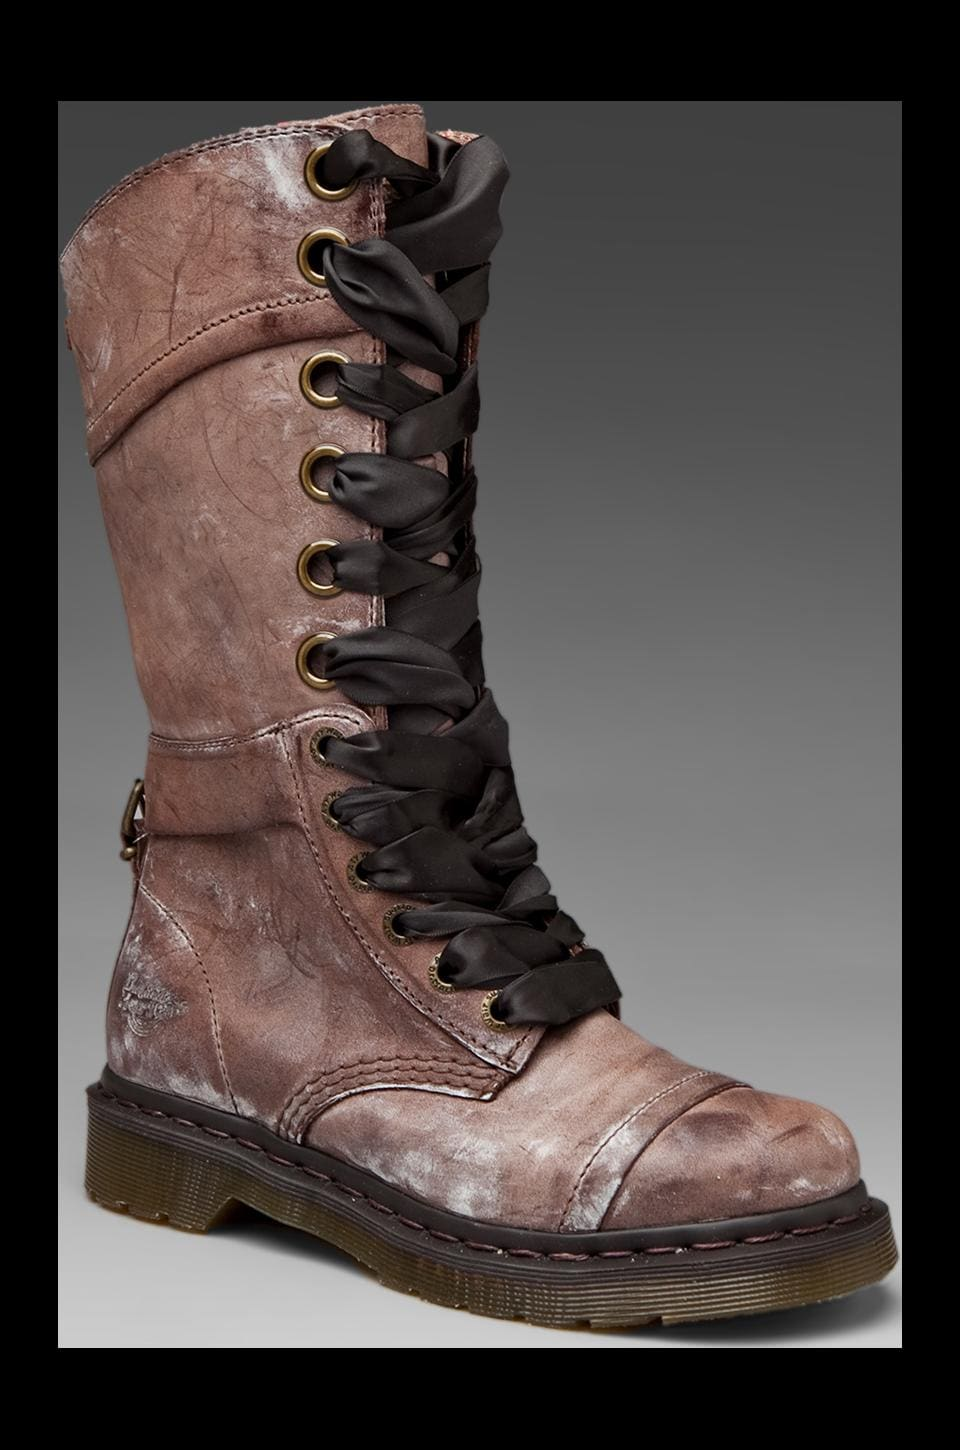 Dr. Martens Triumph 14 Eye Boot in Brown Brun